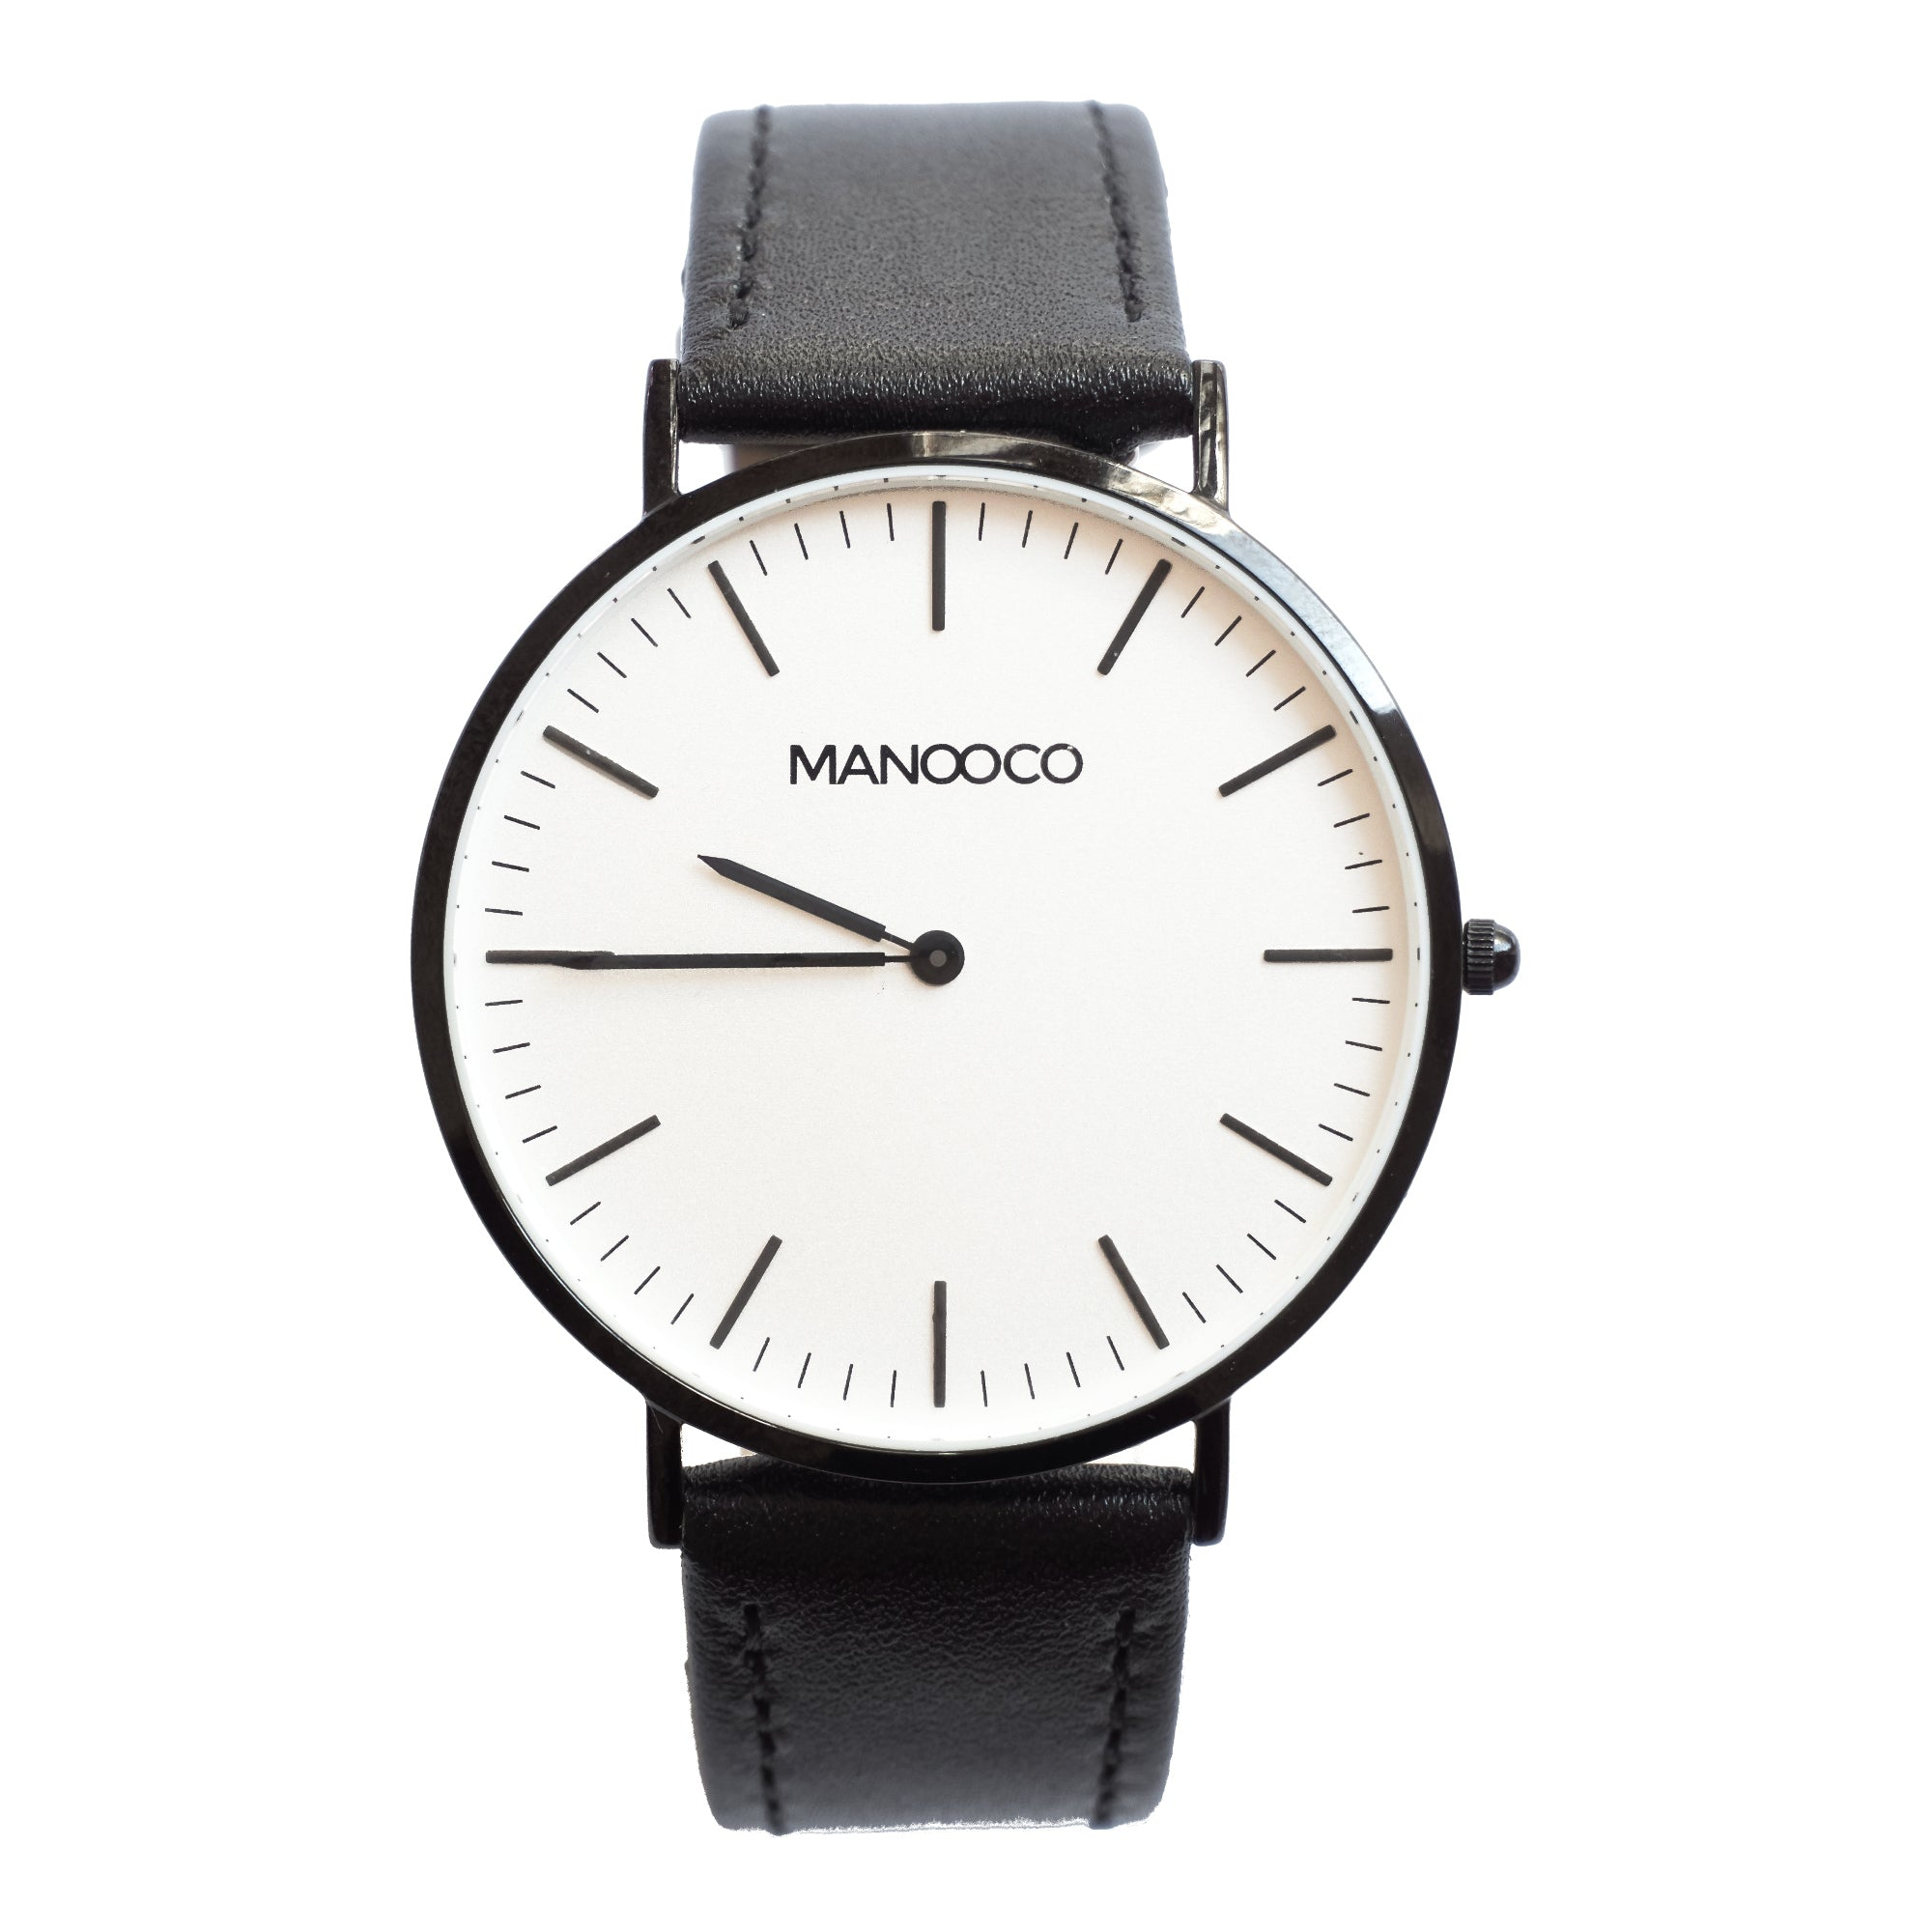 Zephyr Black / Black Matt Leather - Watch - MANOOCO - Watch - manooco